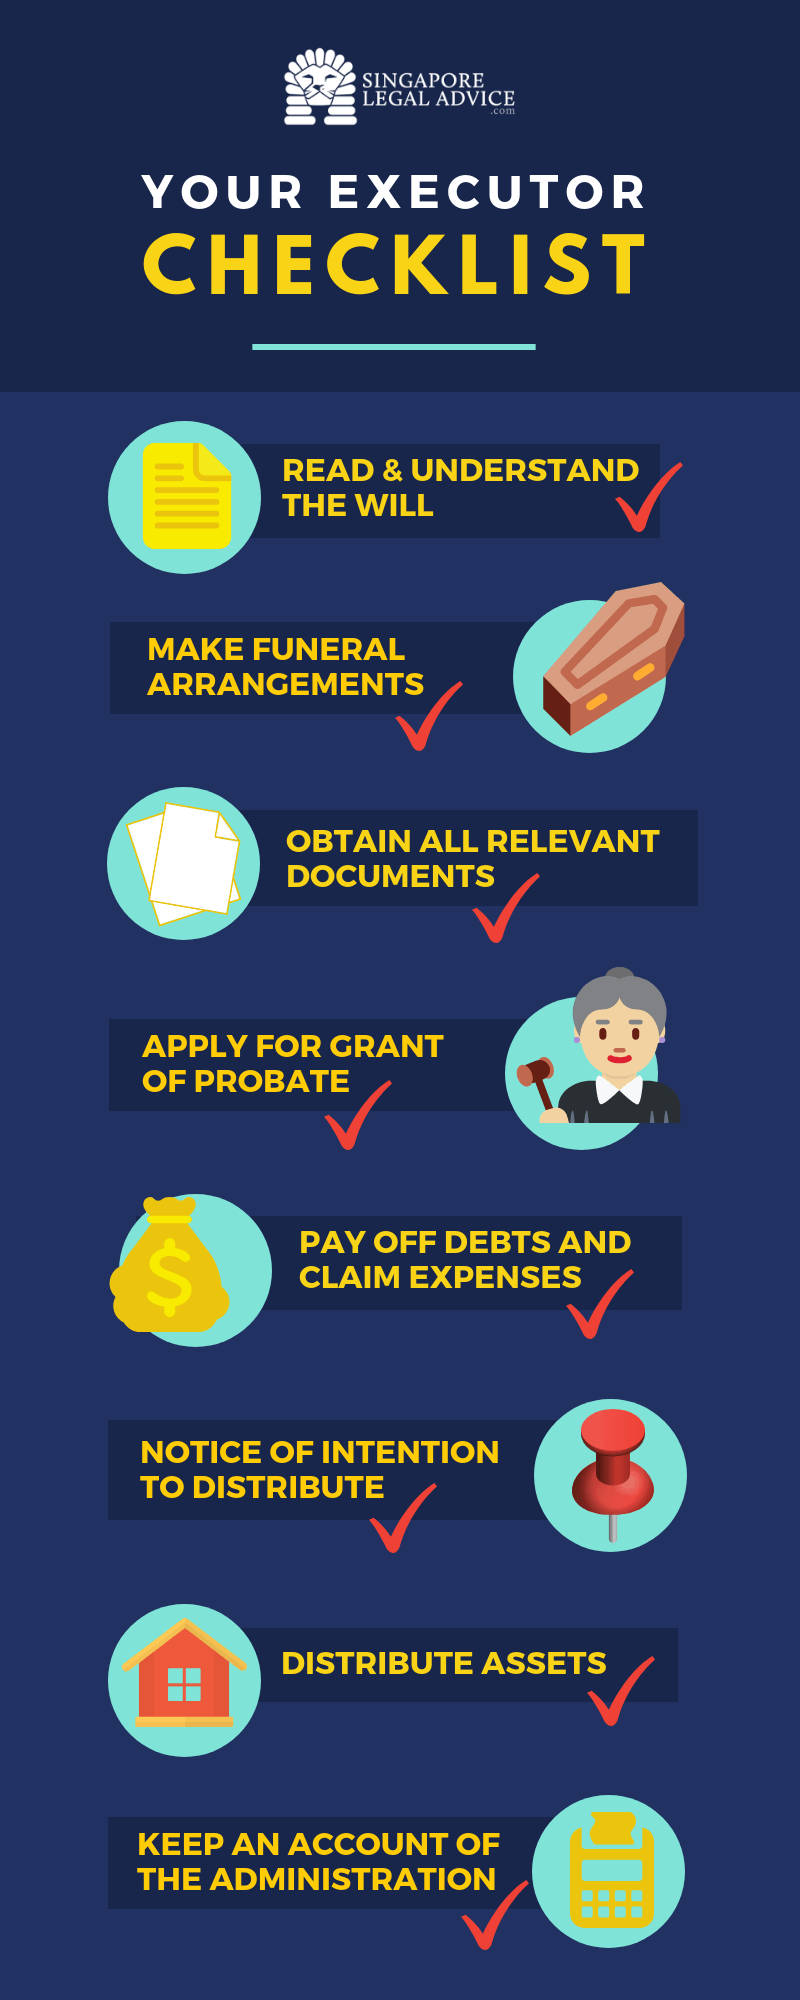 Executor's checklist to executing a will in Singapore